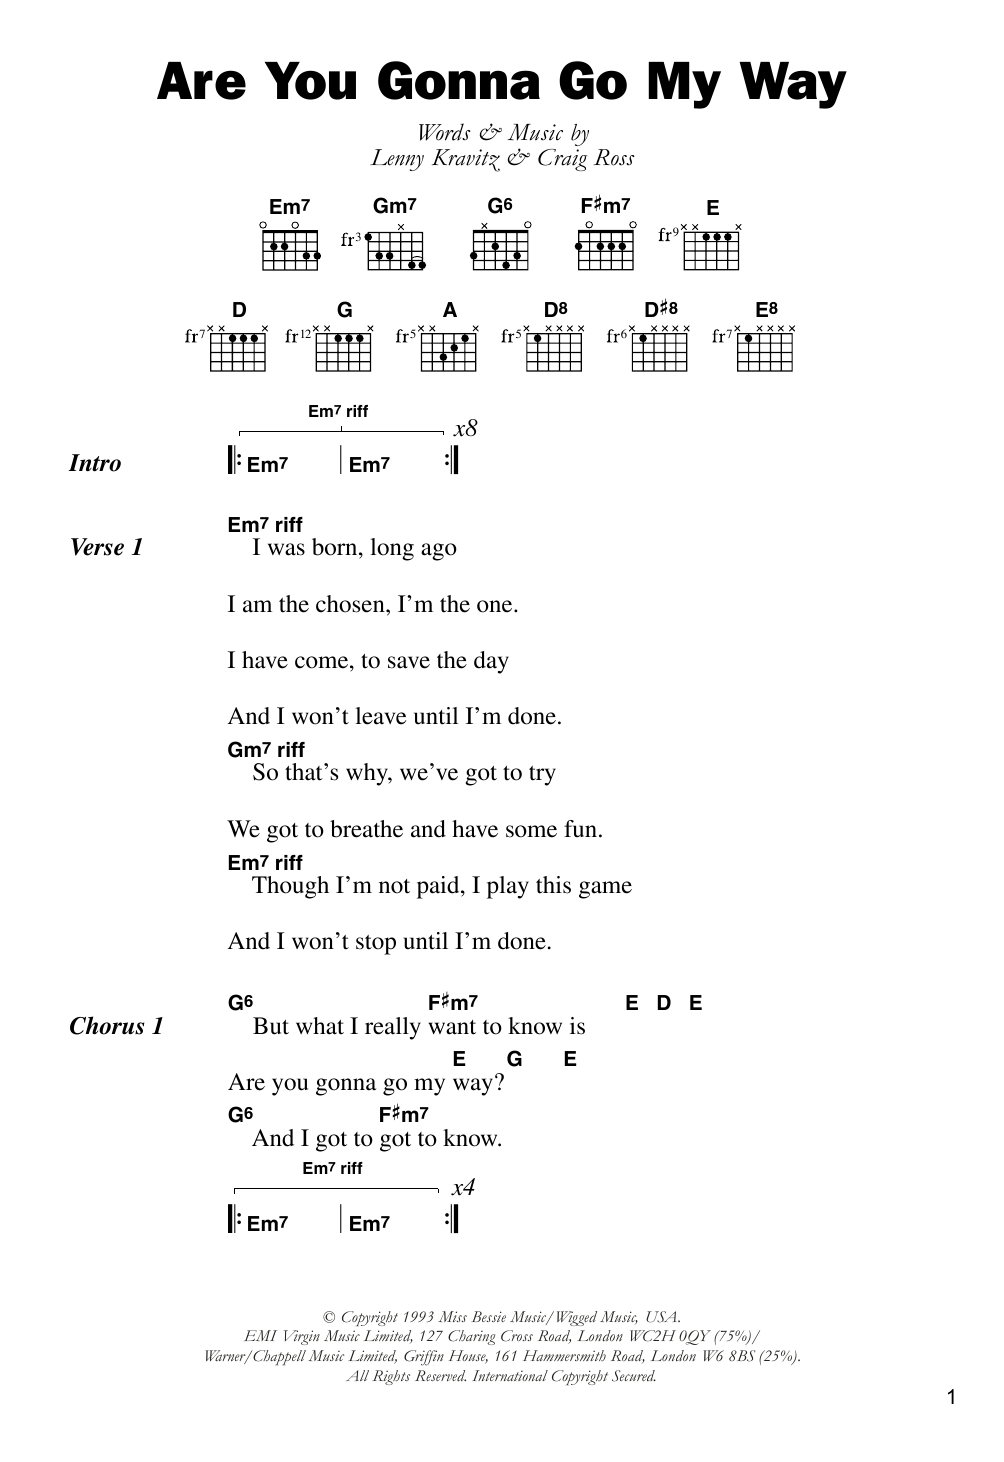 Are You Gonna Go My Way Sheet Music